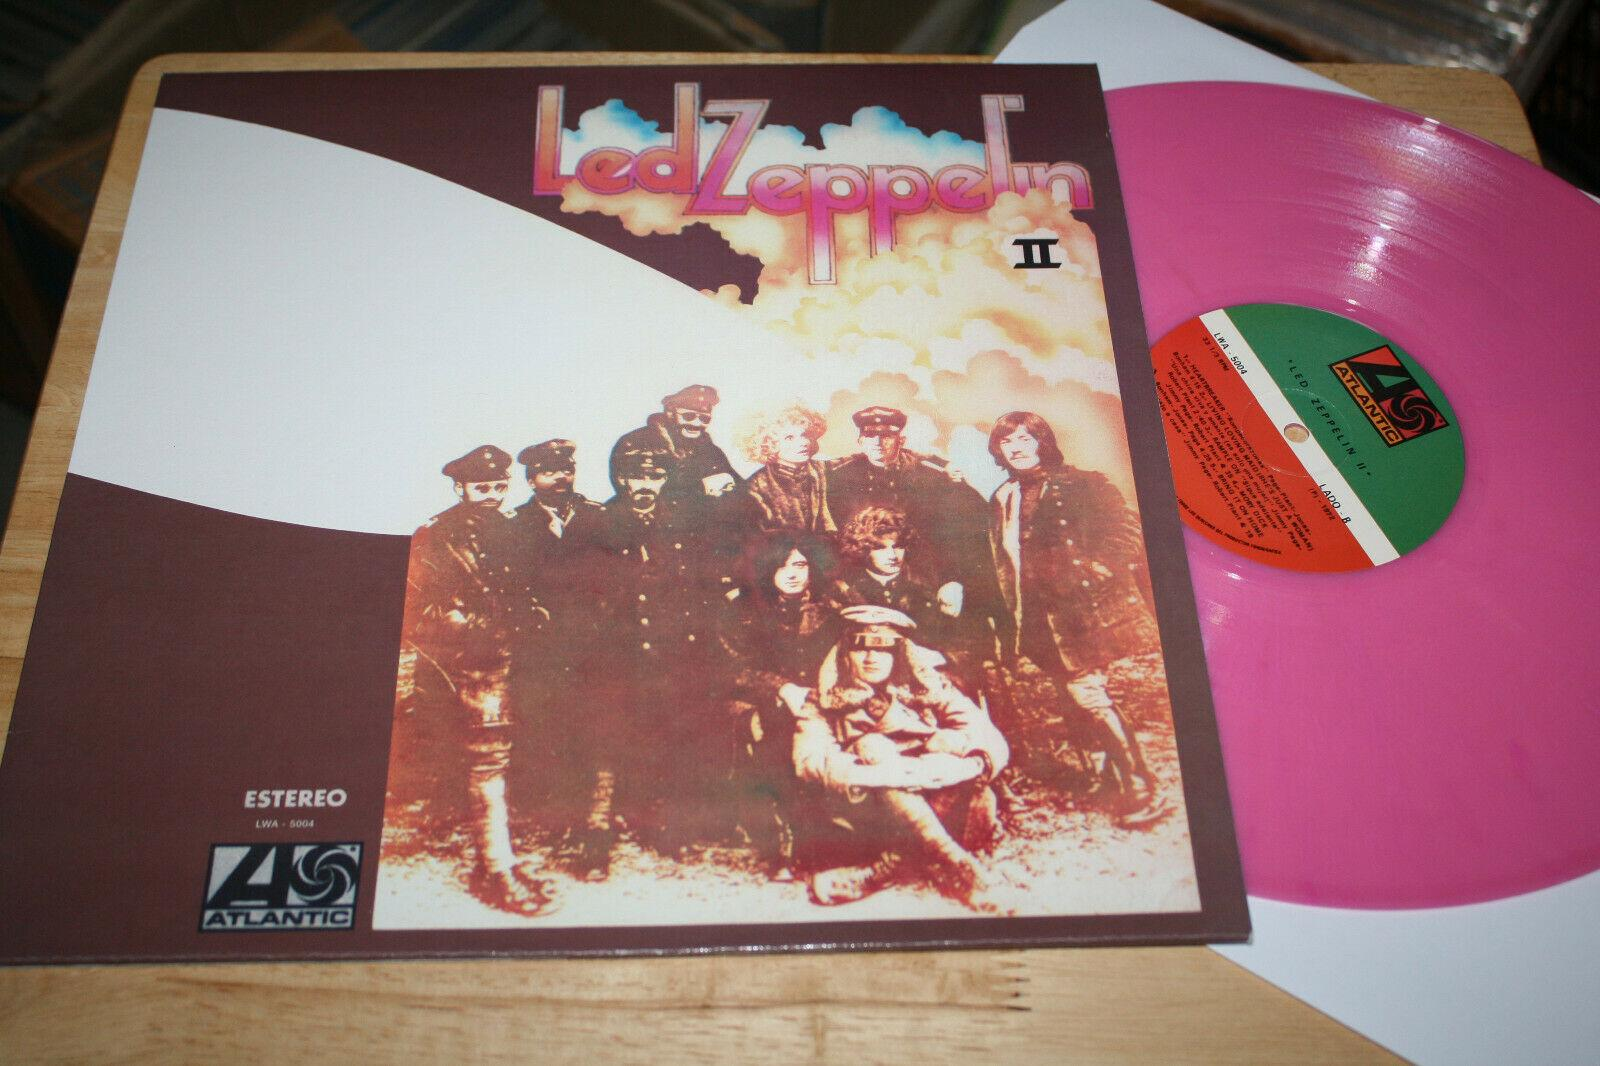 Led Zeppelin II - Rare Atlantic 1st Press Mexico Color Hard Rock Vinyl LP RE TOP